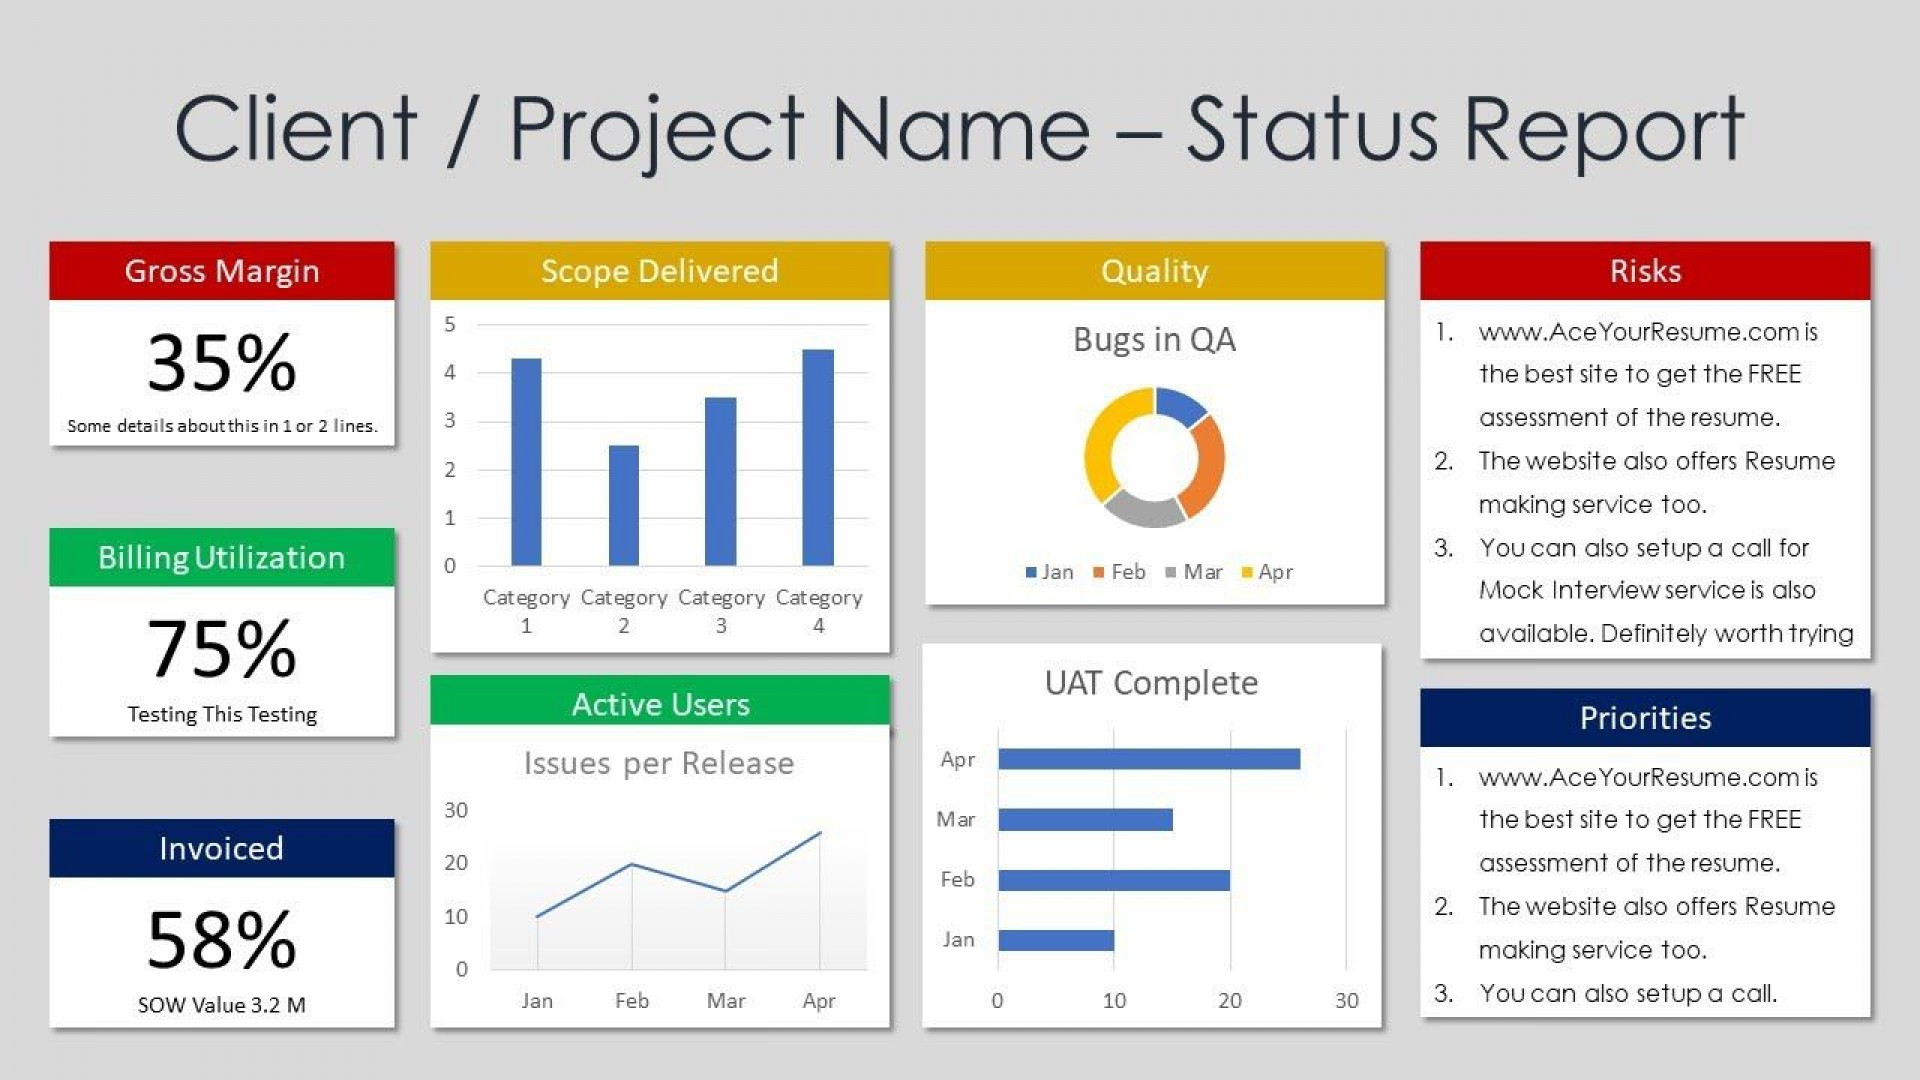 000 Fearsome Project Management Progres Report Template High Definition  Statu Ppt Weekly1920